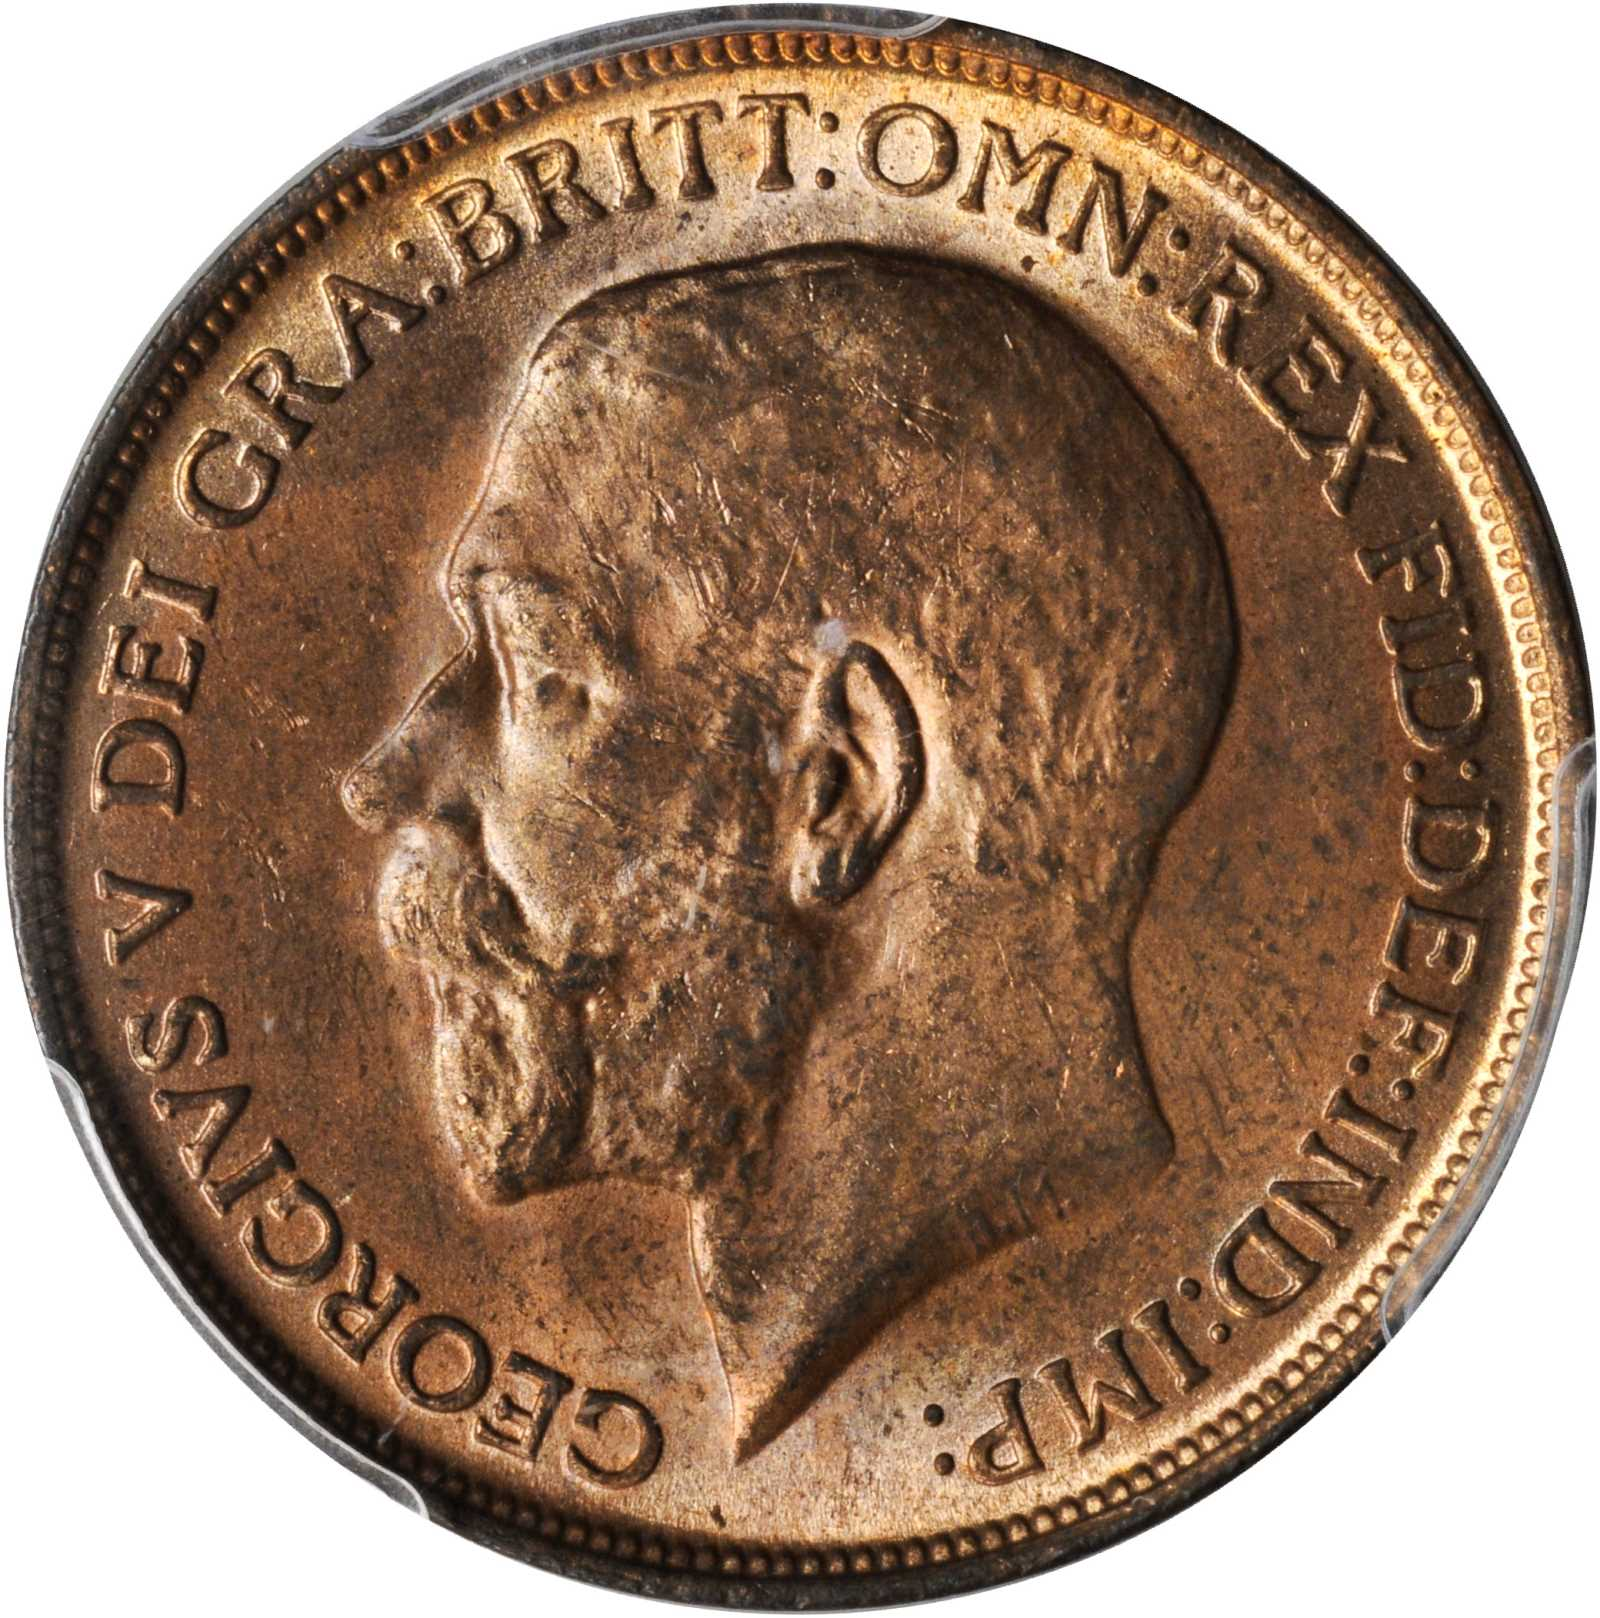 Penny (Pre-decimal): Photo Great Britain 1912-H penny